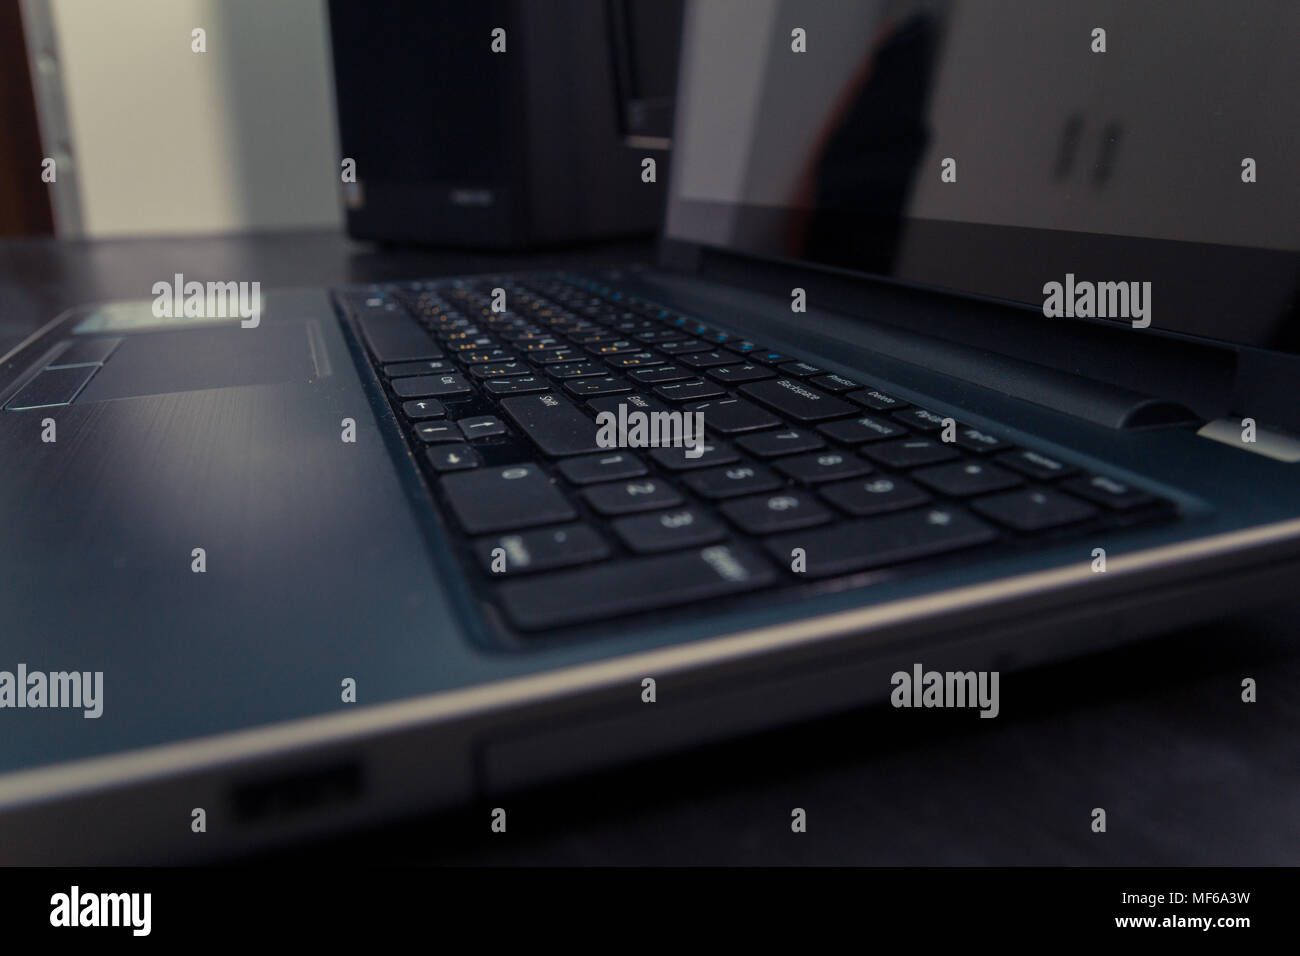 Keyboard with letters in Hebrew and English - Laptop keyboard - Stock Image